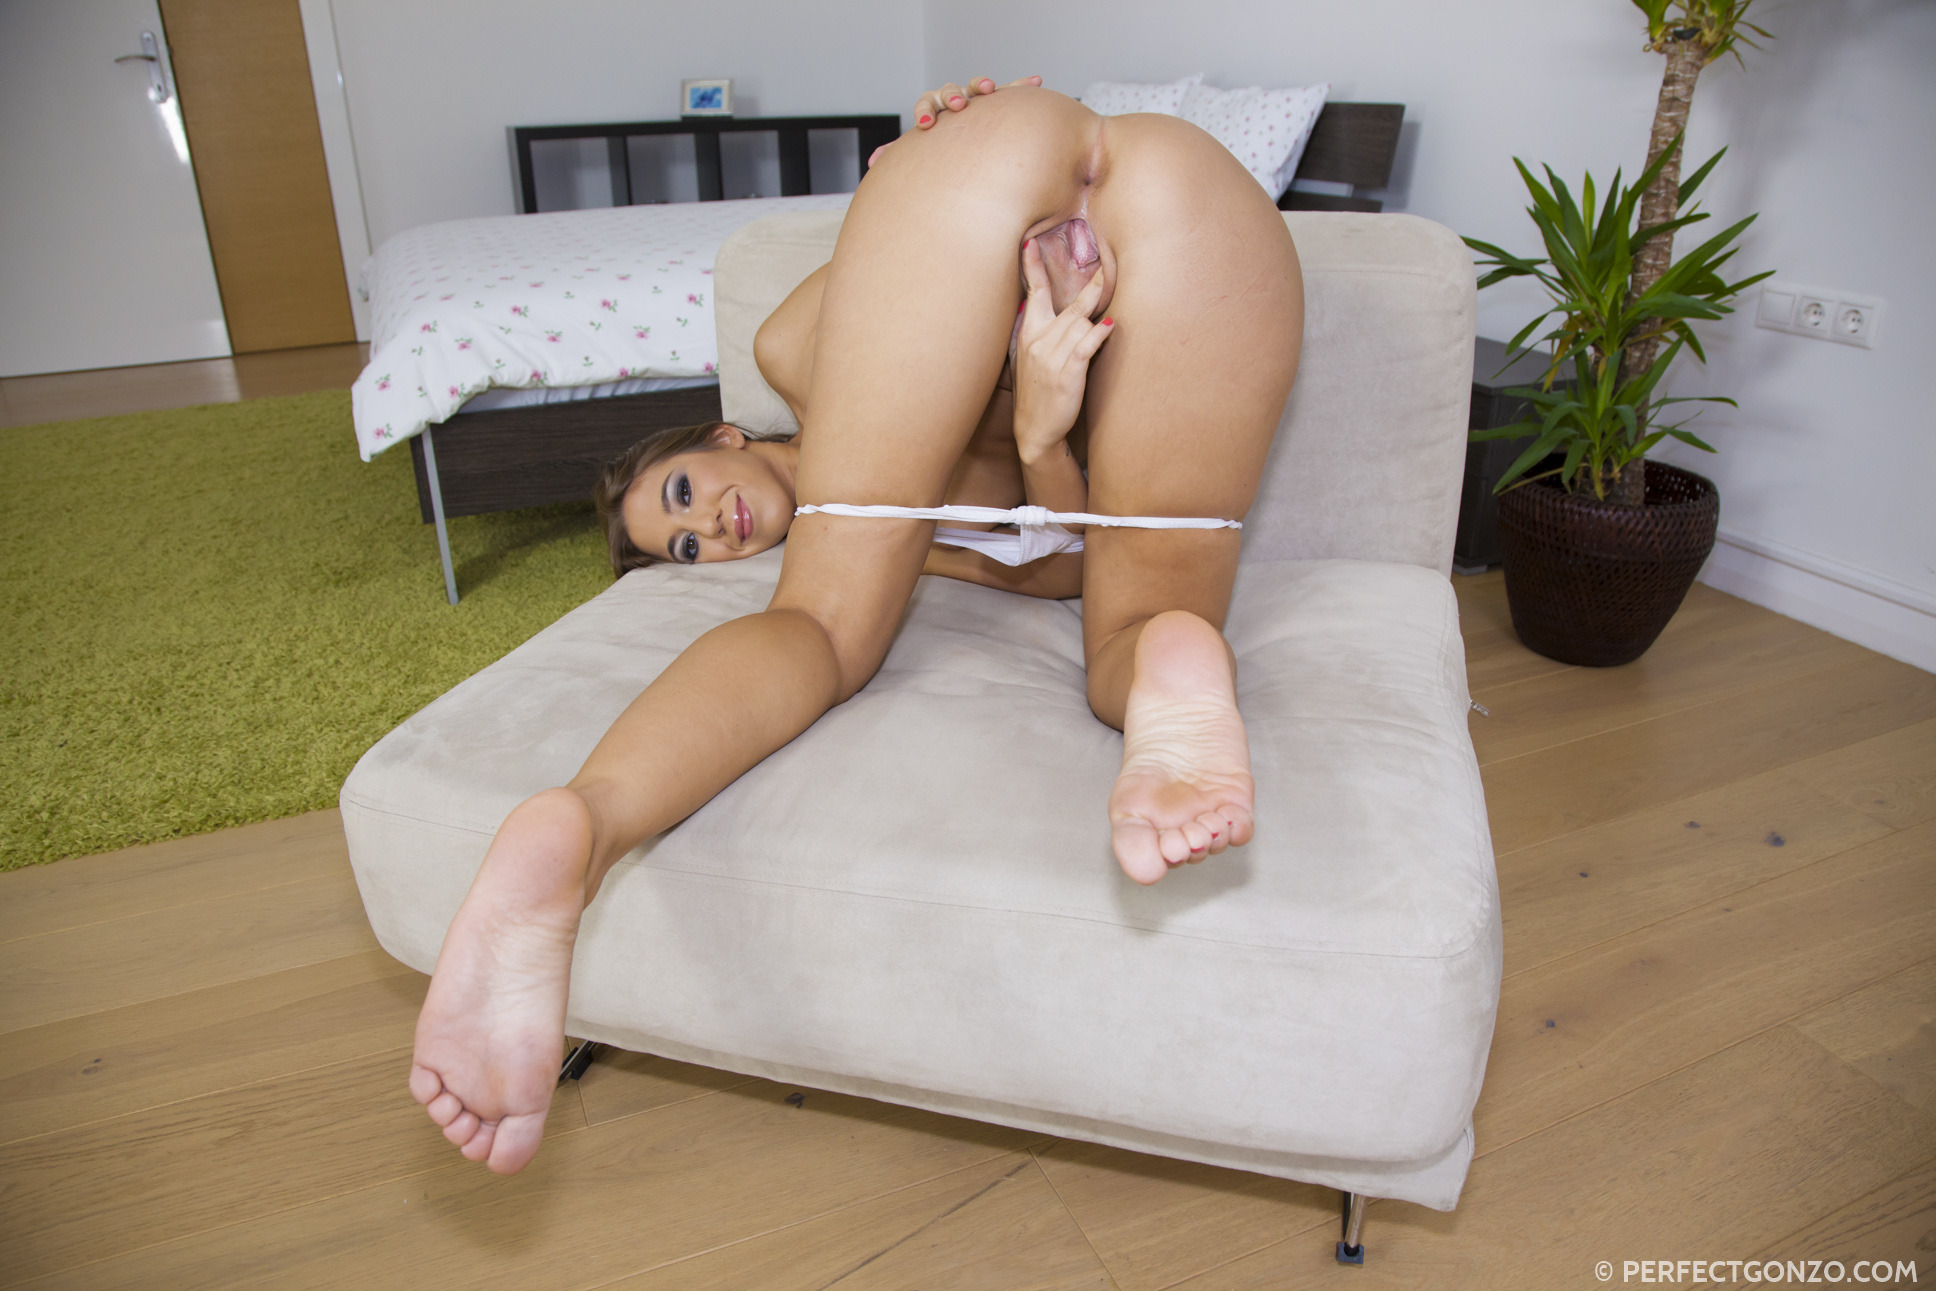 fhg perfectgonzo content givemepink suzie c movies photos 8